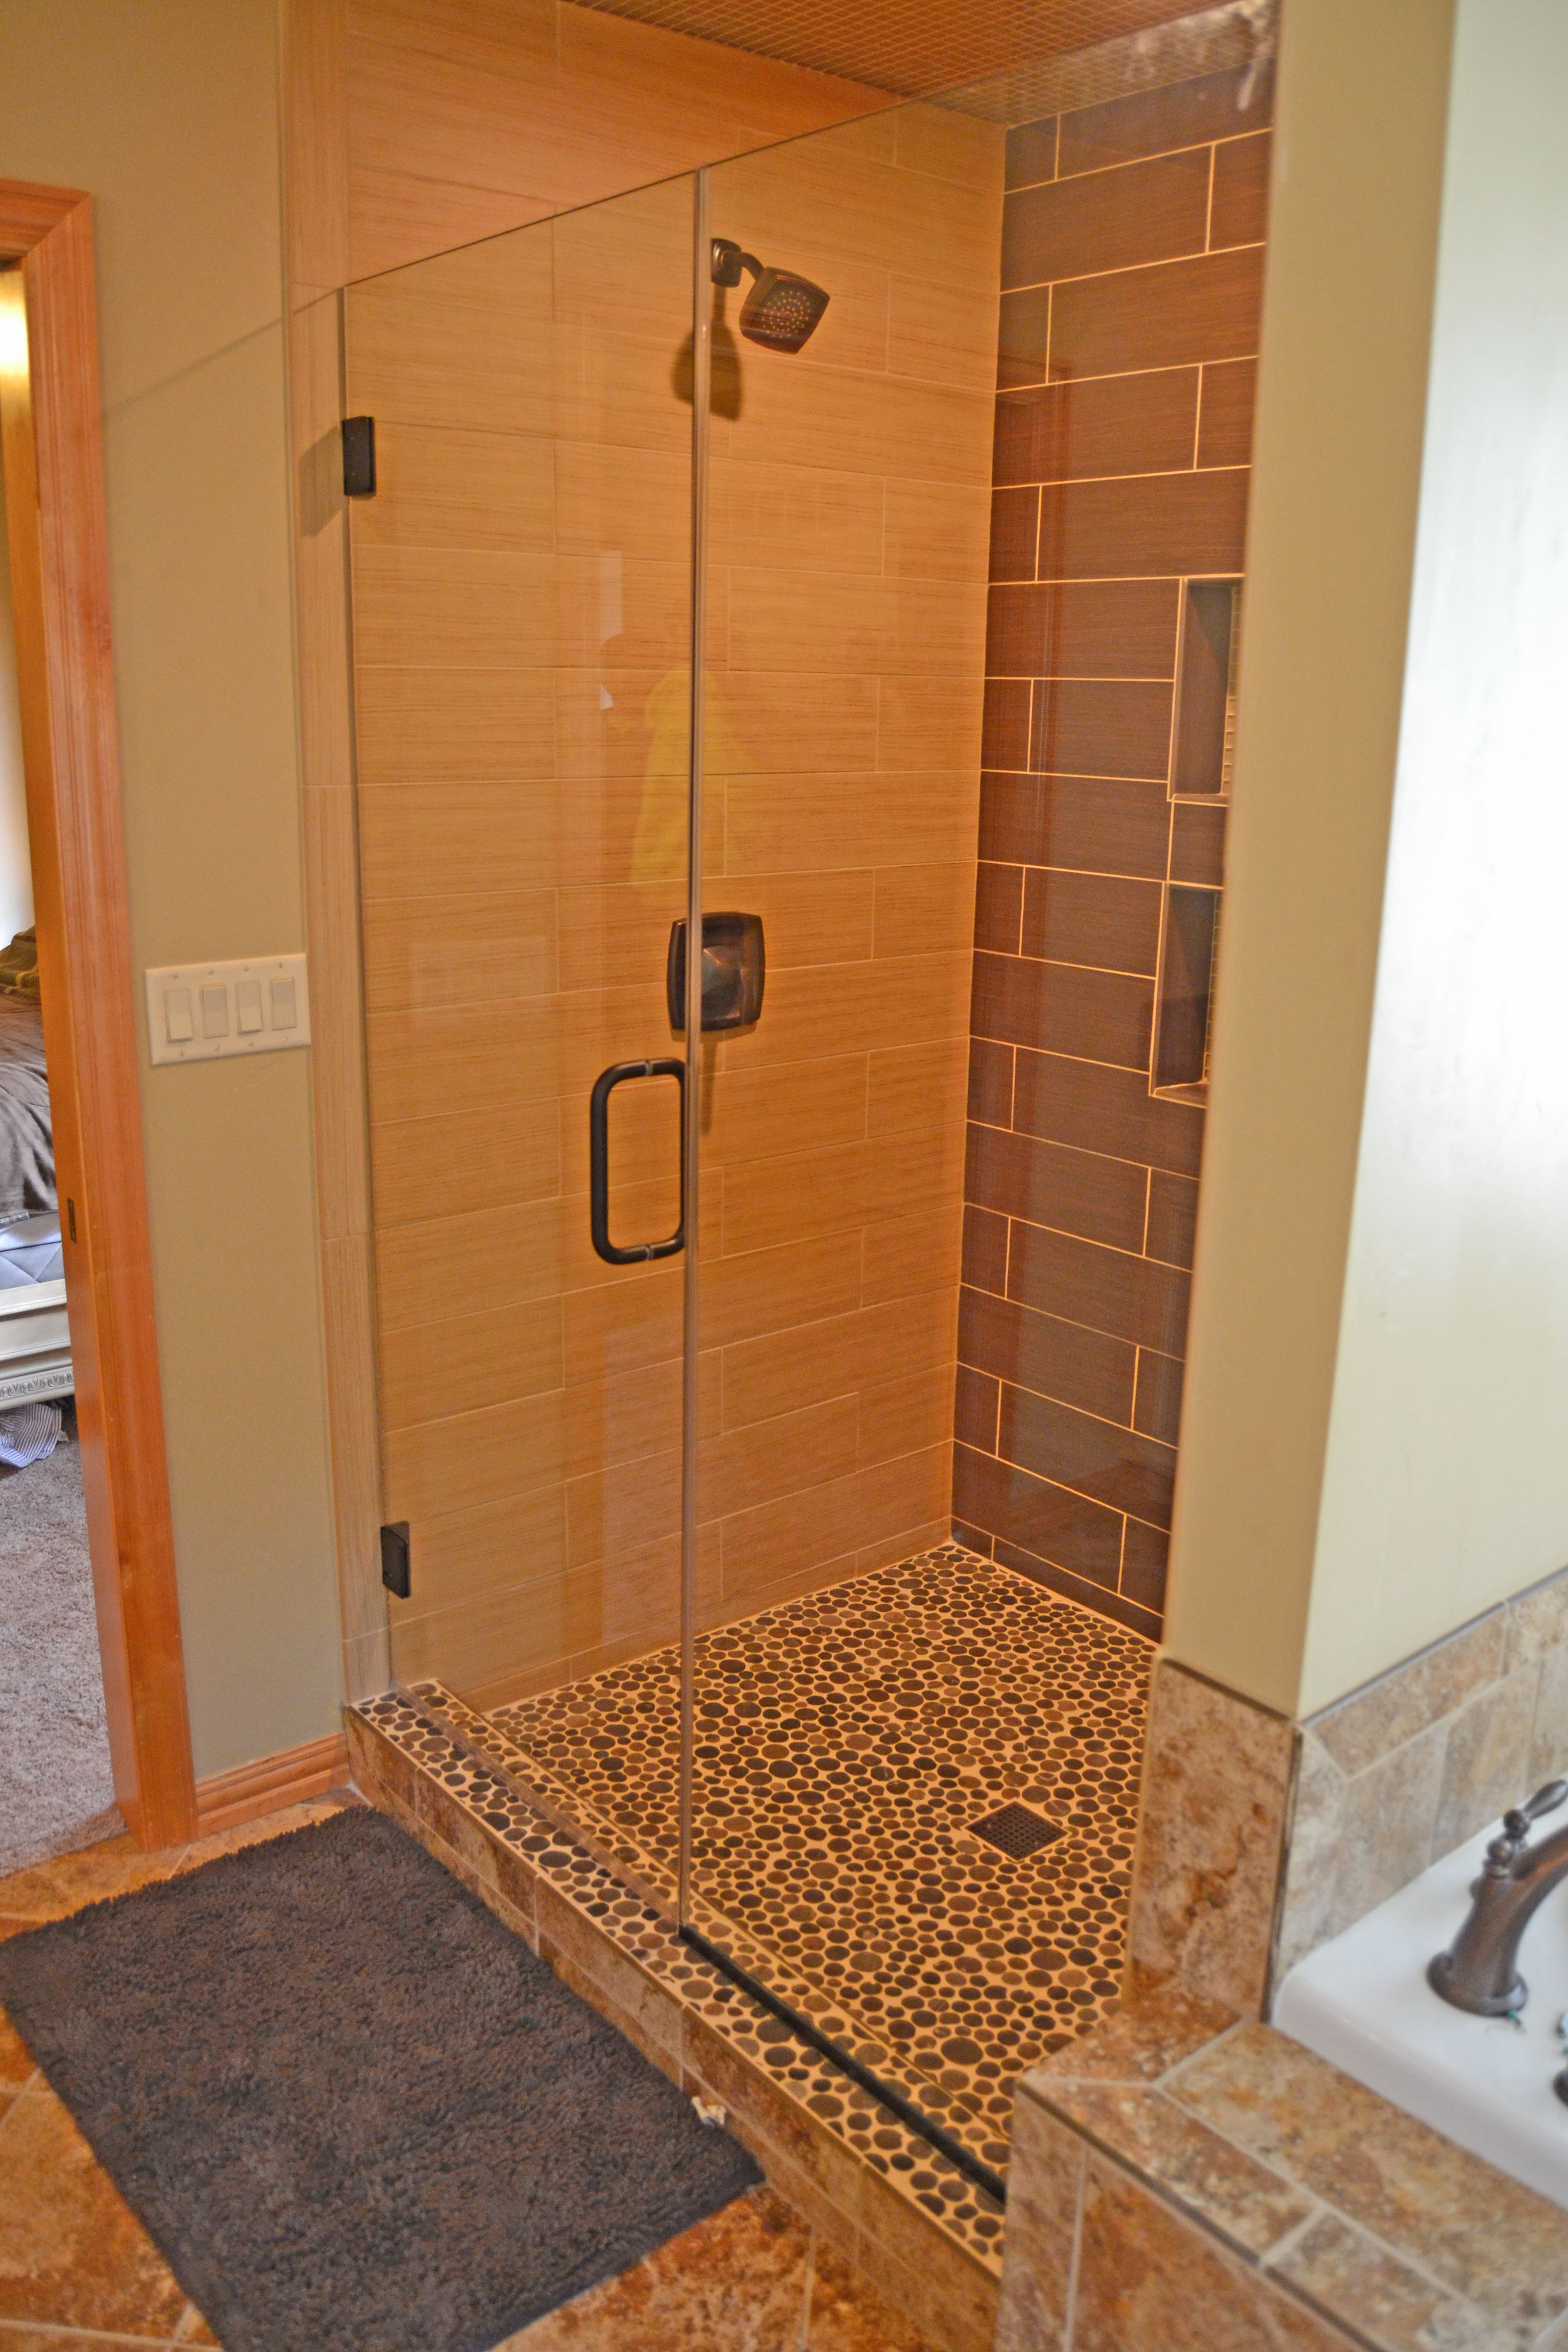 Heavy Glass Shower Door And Panel With Oil Rubbed Bronze Hardware